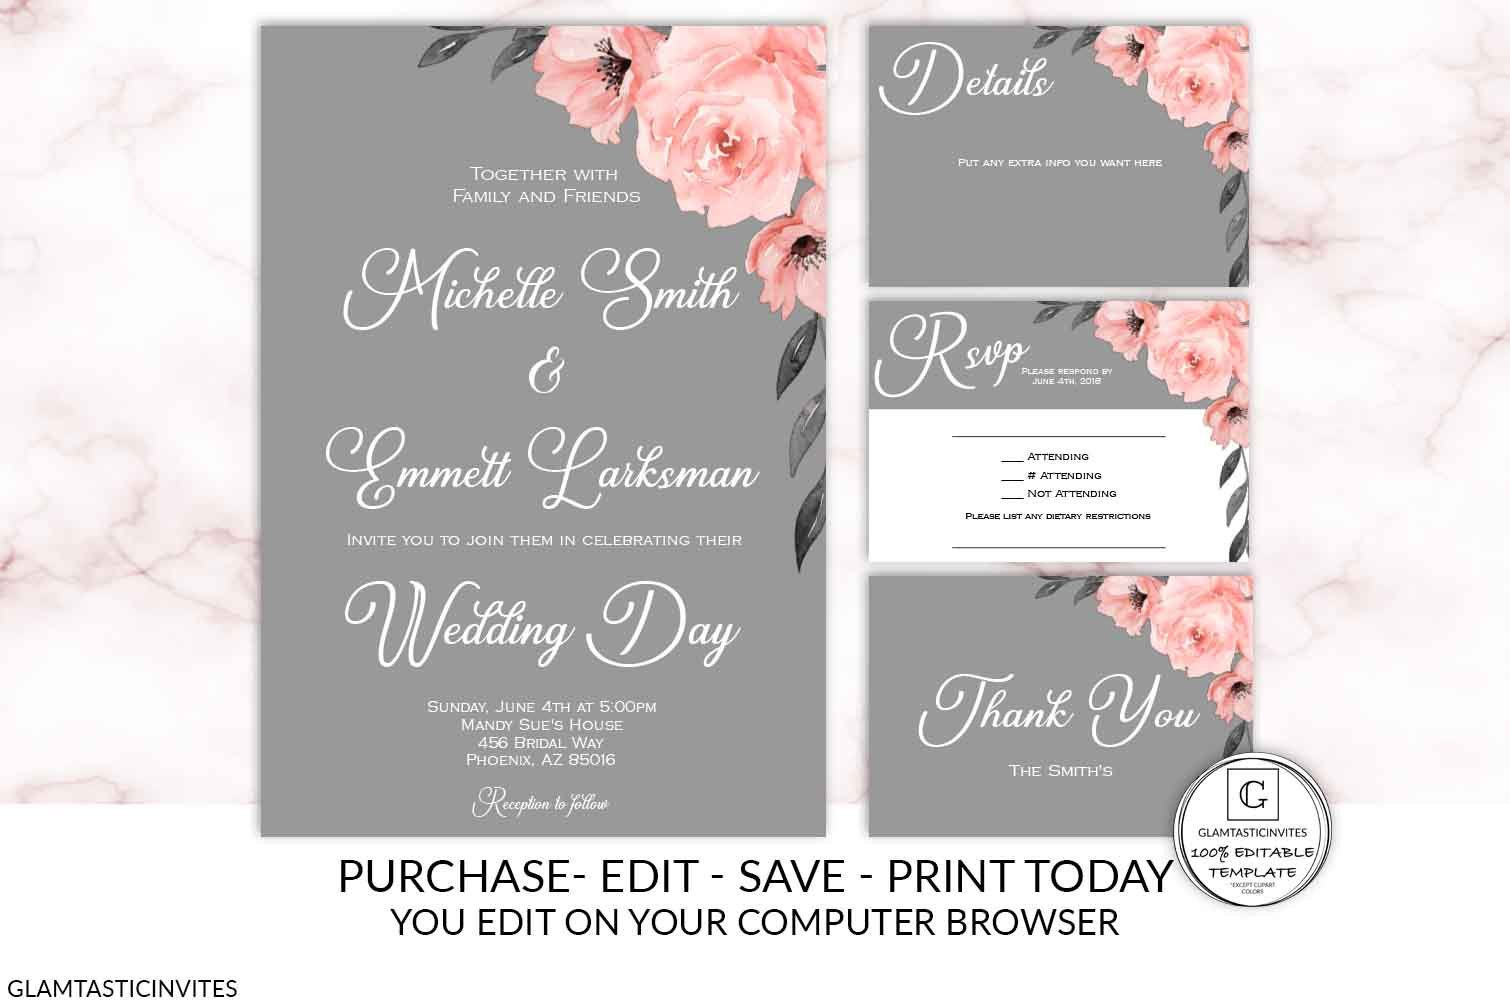 Red Rose Gray Wood Wedding Invitation Printable Wedding Template Rustic Country Farmhouse Wedding Wedding Kit Quick Turnaround Rose Wedding Invitation Packages Wood Wedding Invitations Printable Wedding Invitations